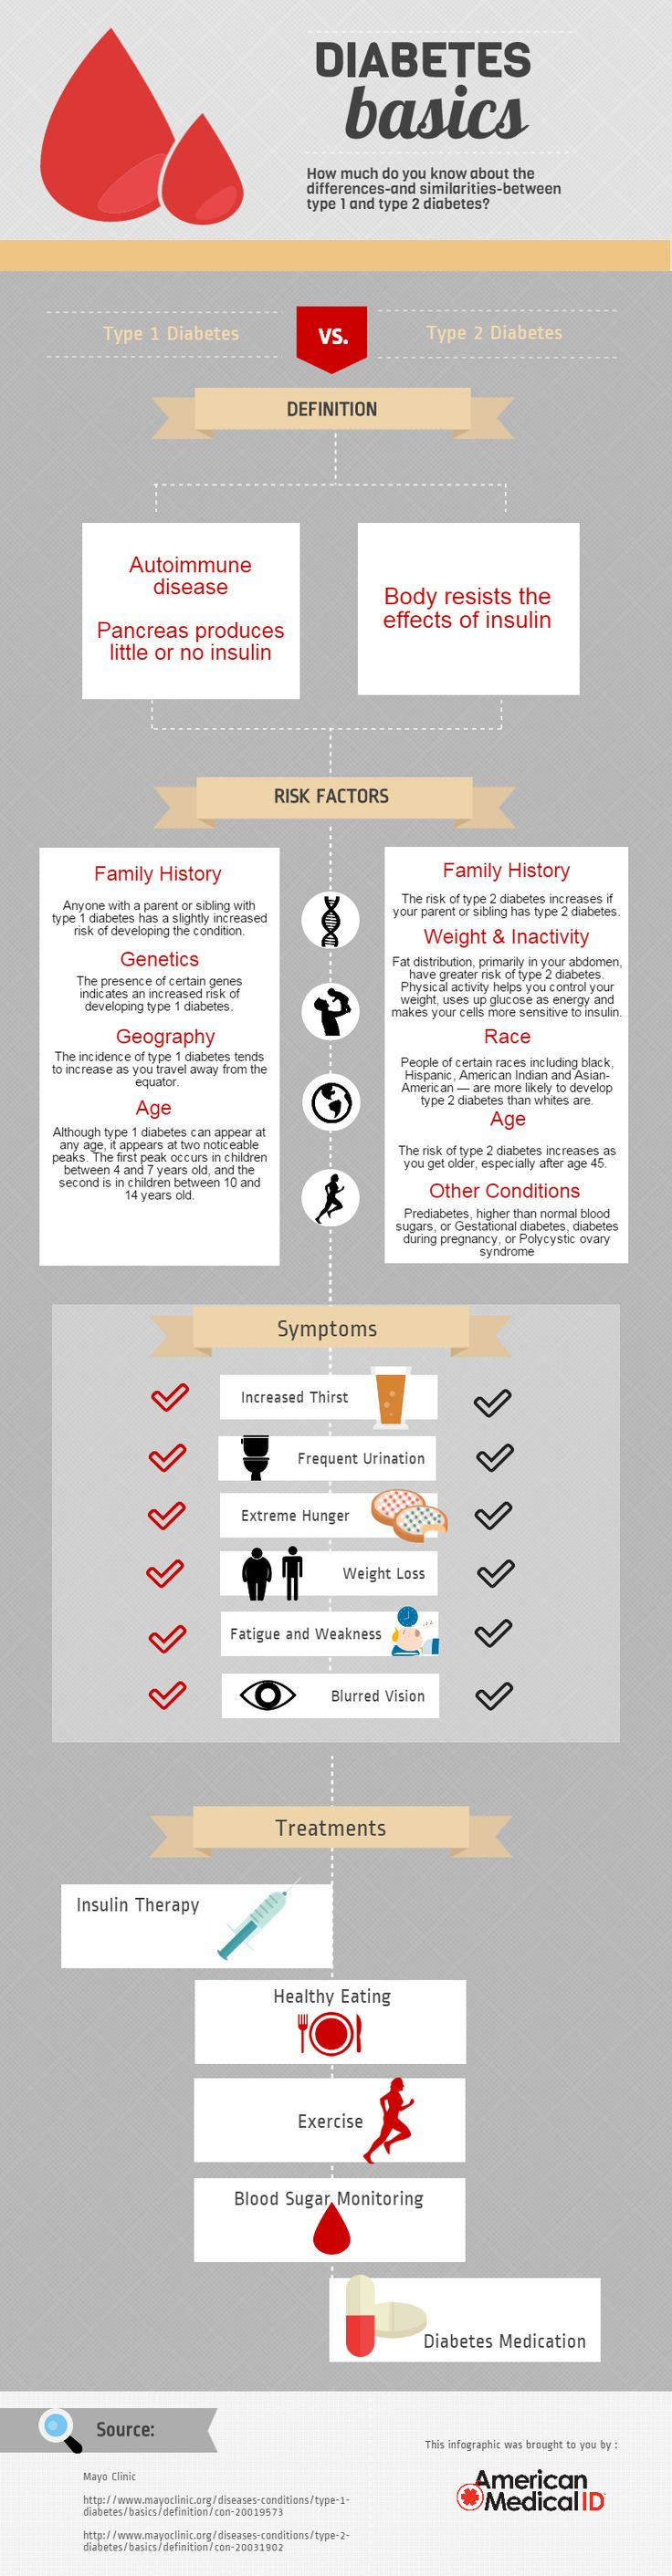 Need a quick reference for #diabetes basics? Check out our infographic that details the similarities and differences between type 1 and type 2.